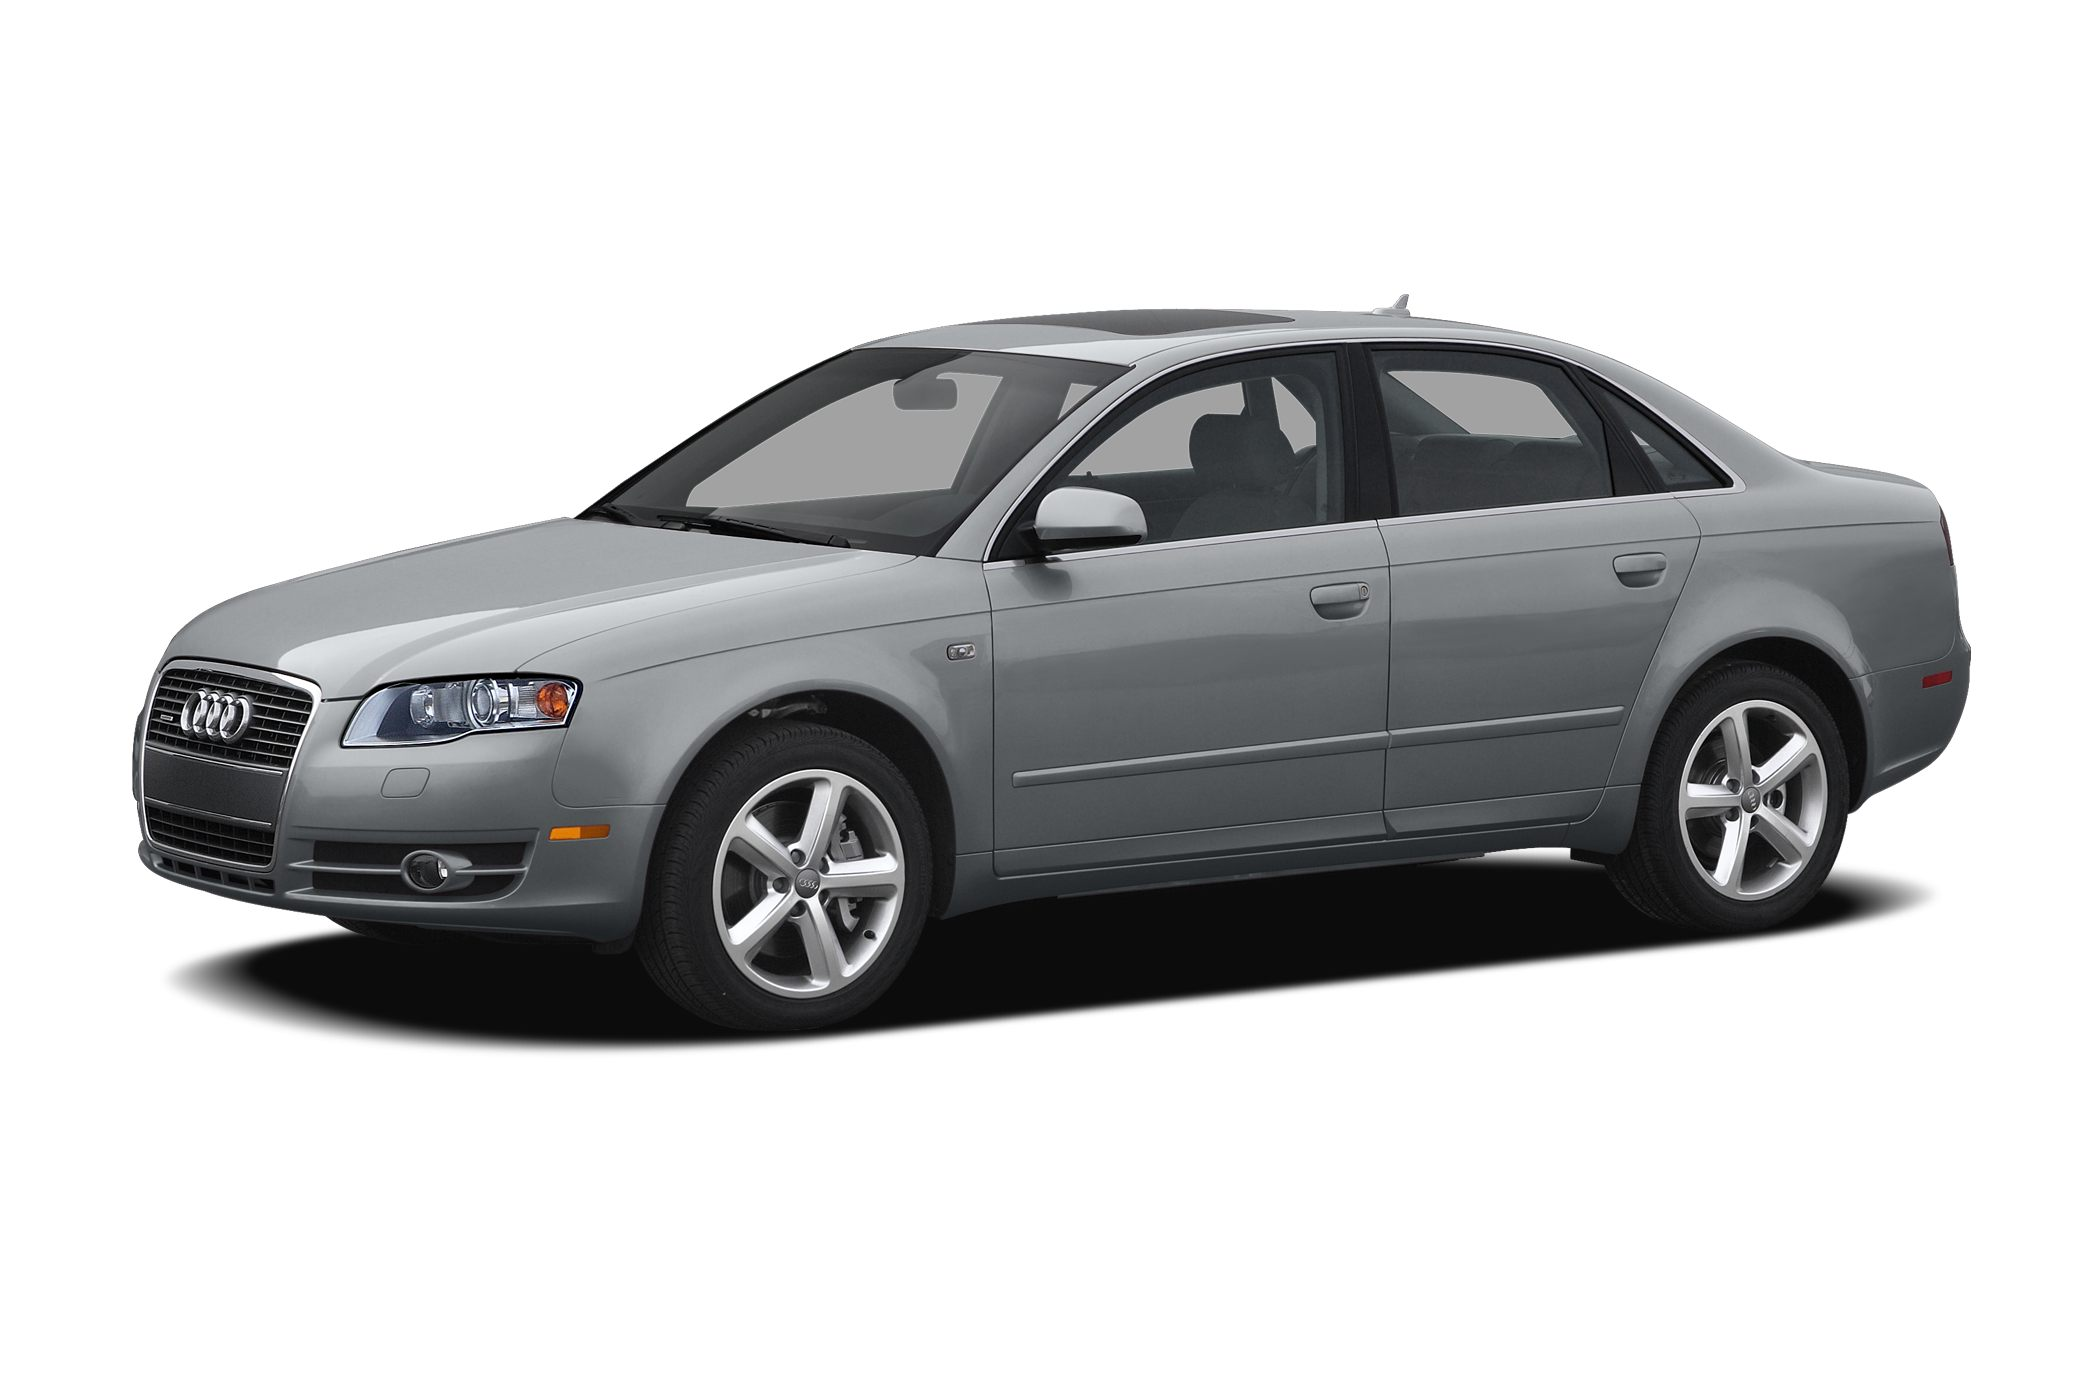 2007 Audi A4 2 0T 4dr All-wheel Drive quattro Sedan Specs and Prices